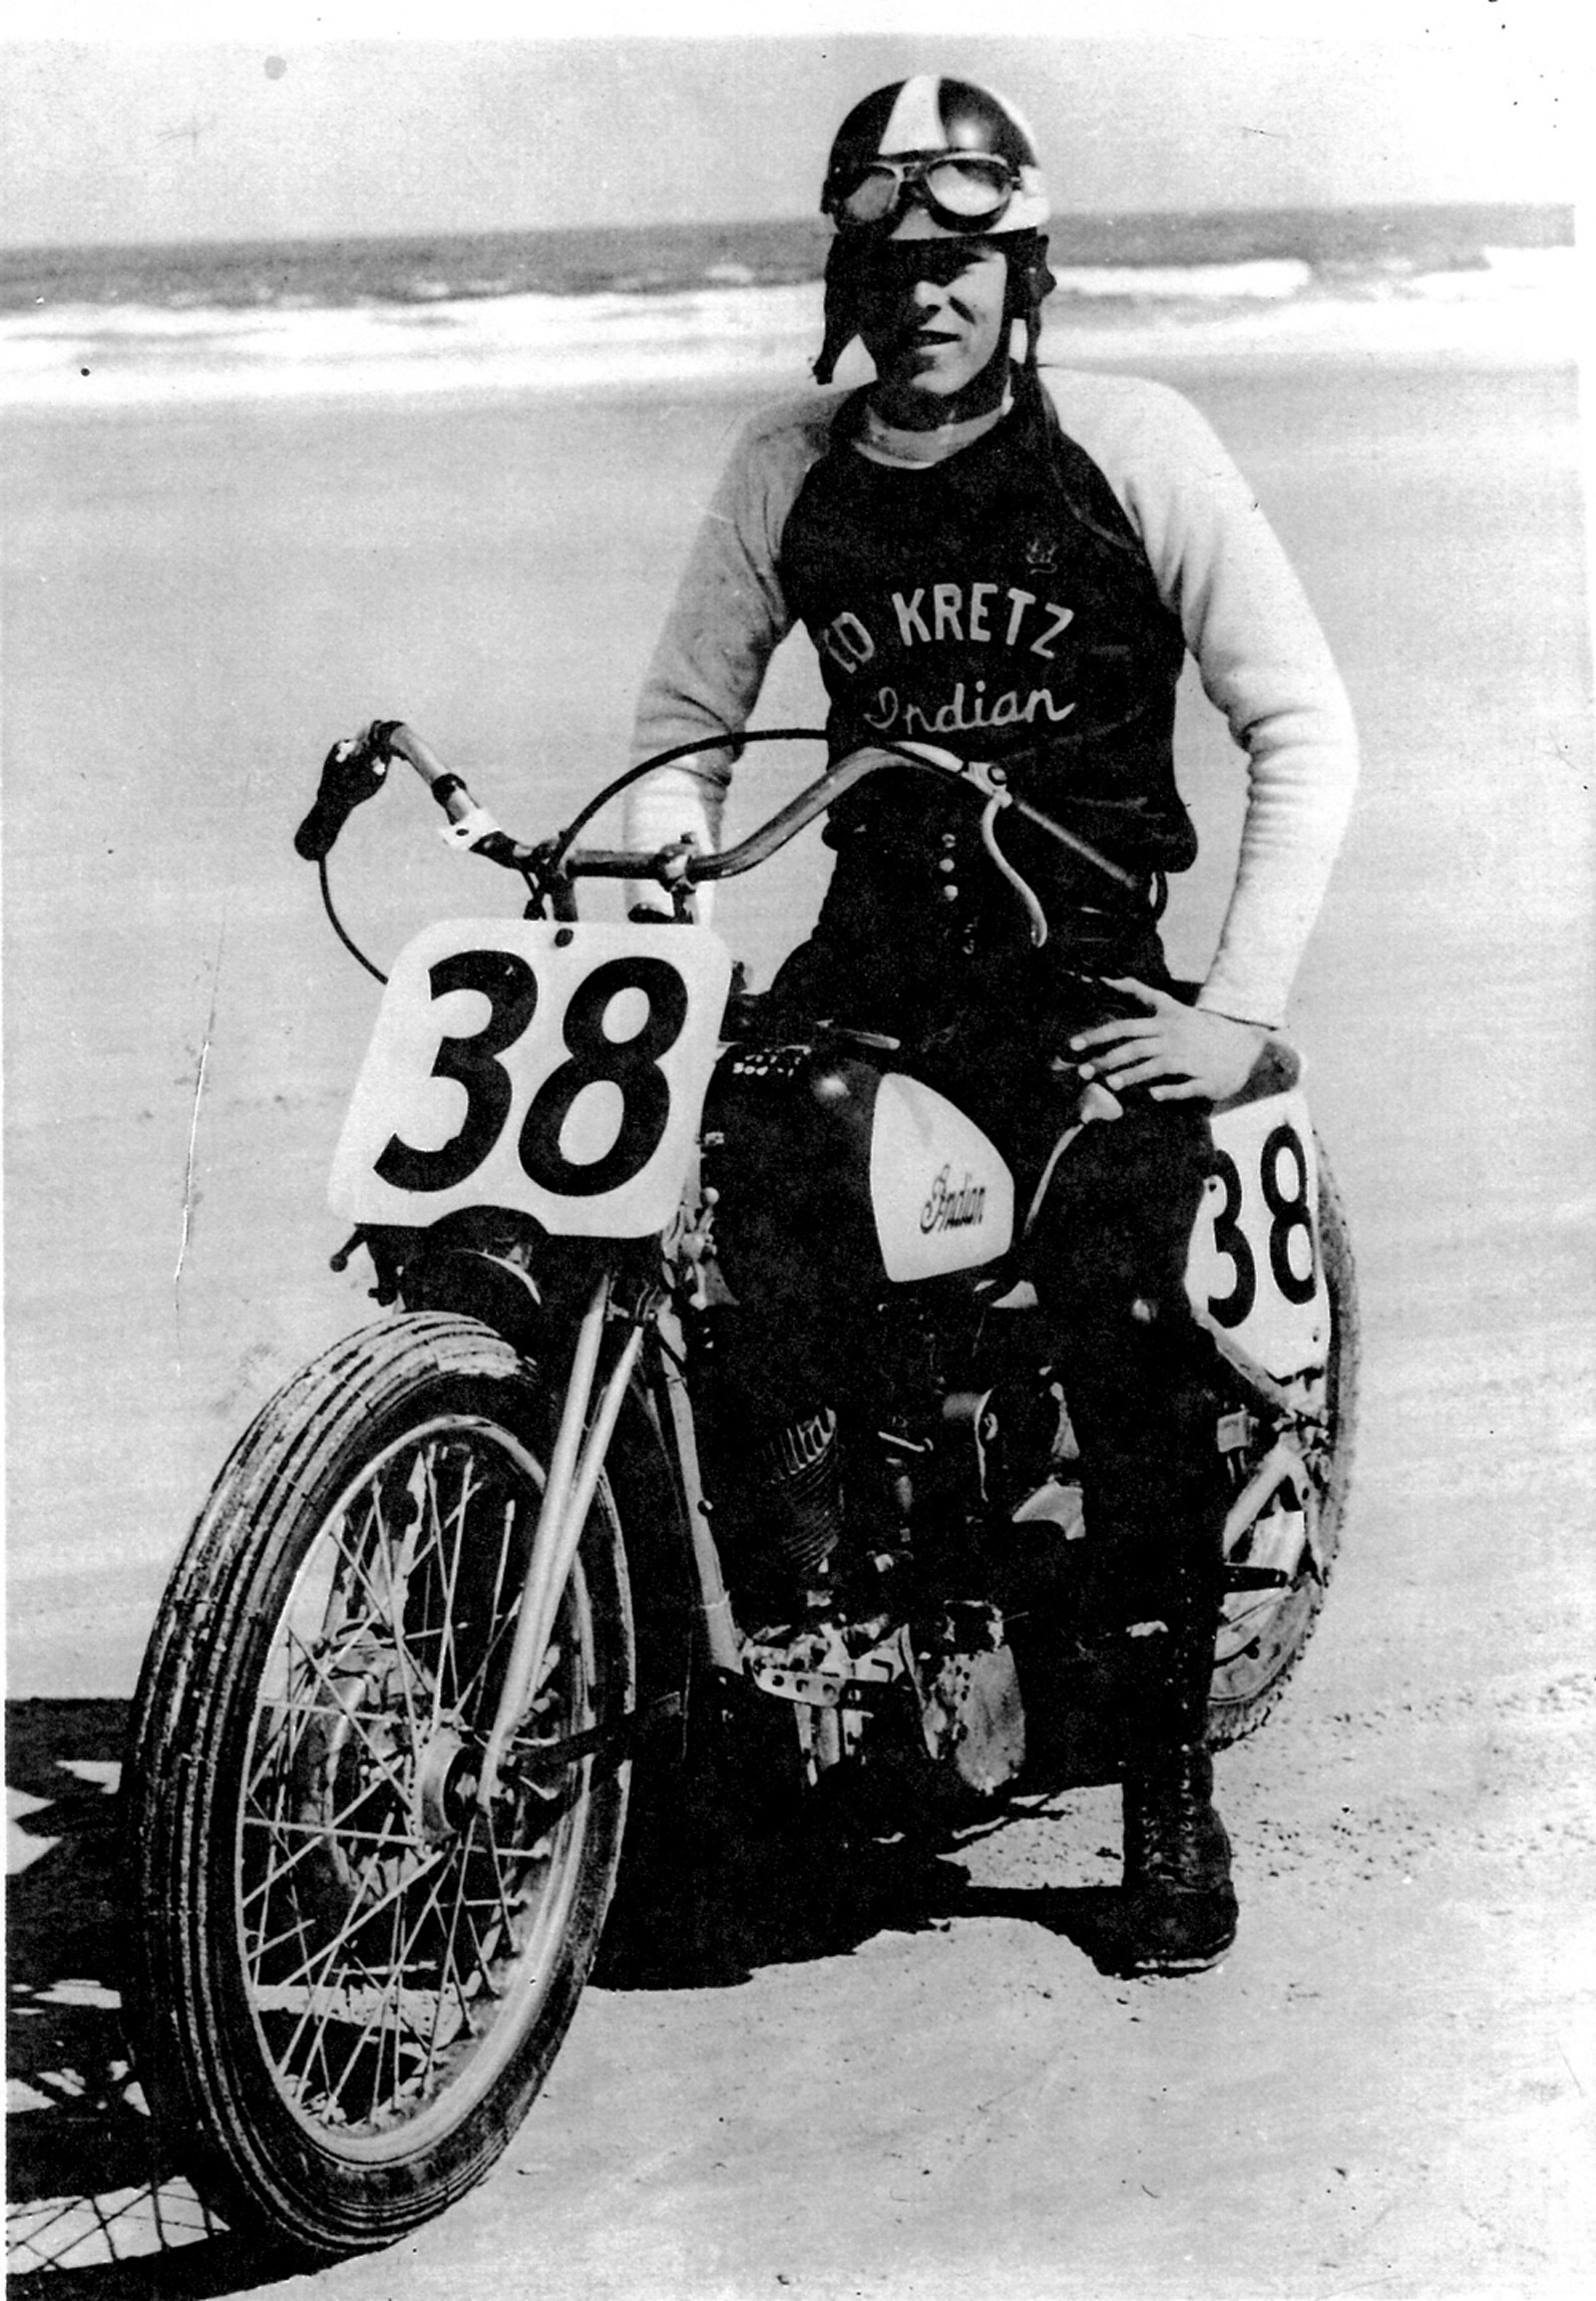 A Day At The Races Motorcycle Racing Legend Ed Kretz Jr